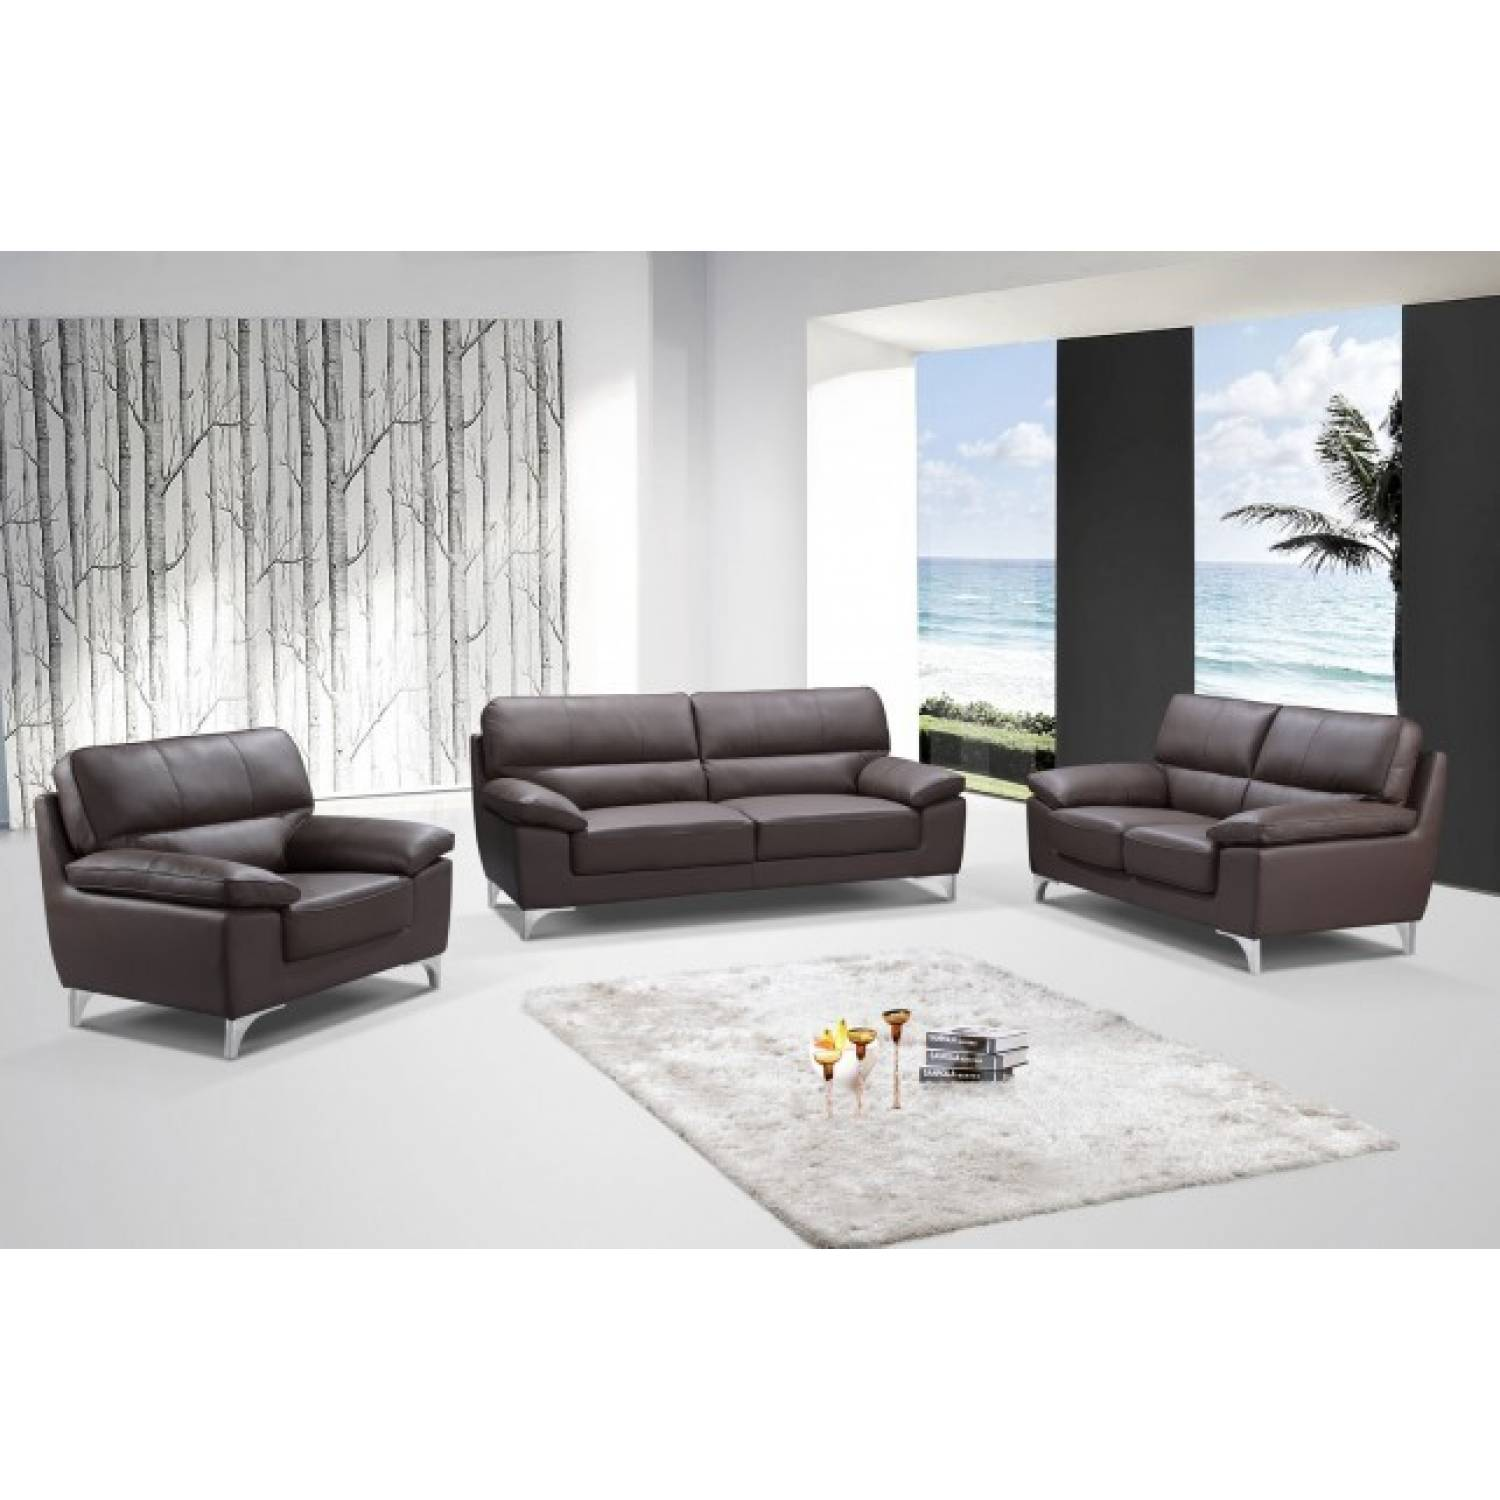 9436 Brown 2pc Sets Sofa Loveseat